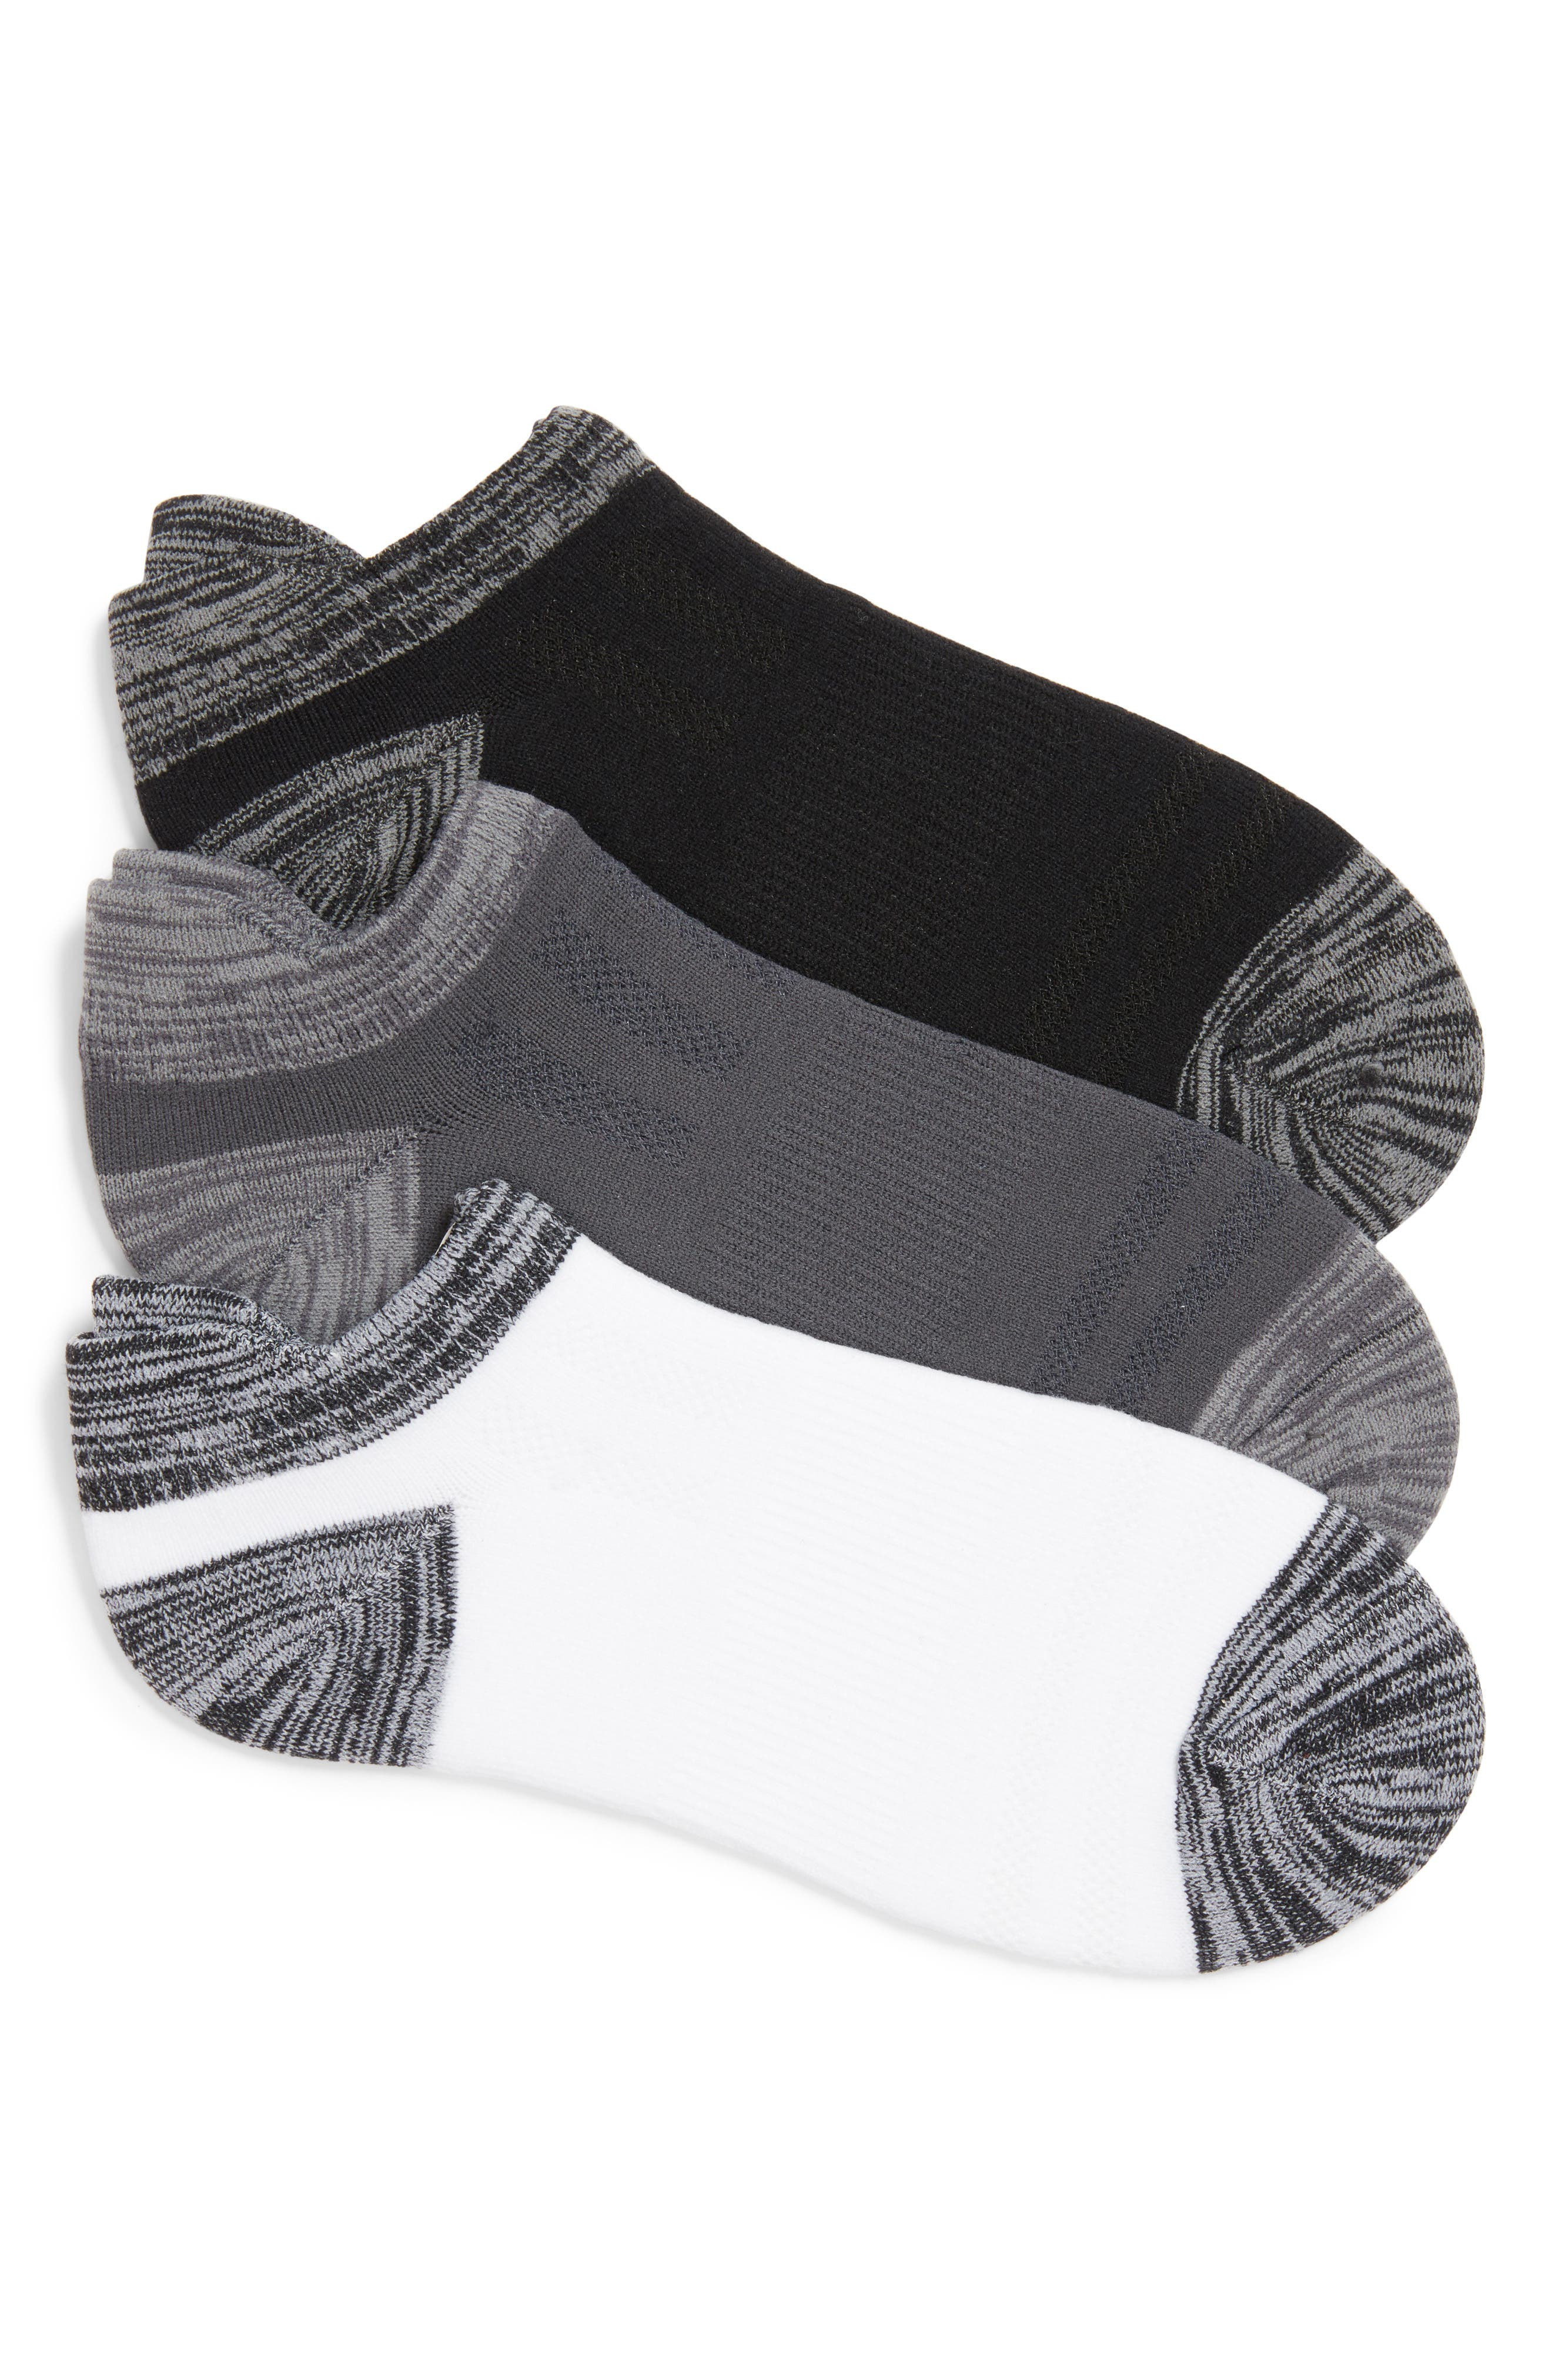 Alternate Image 1 Selected - Sof Sole 3-Pack Low Cut Socks